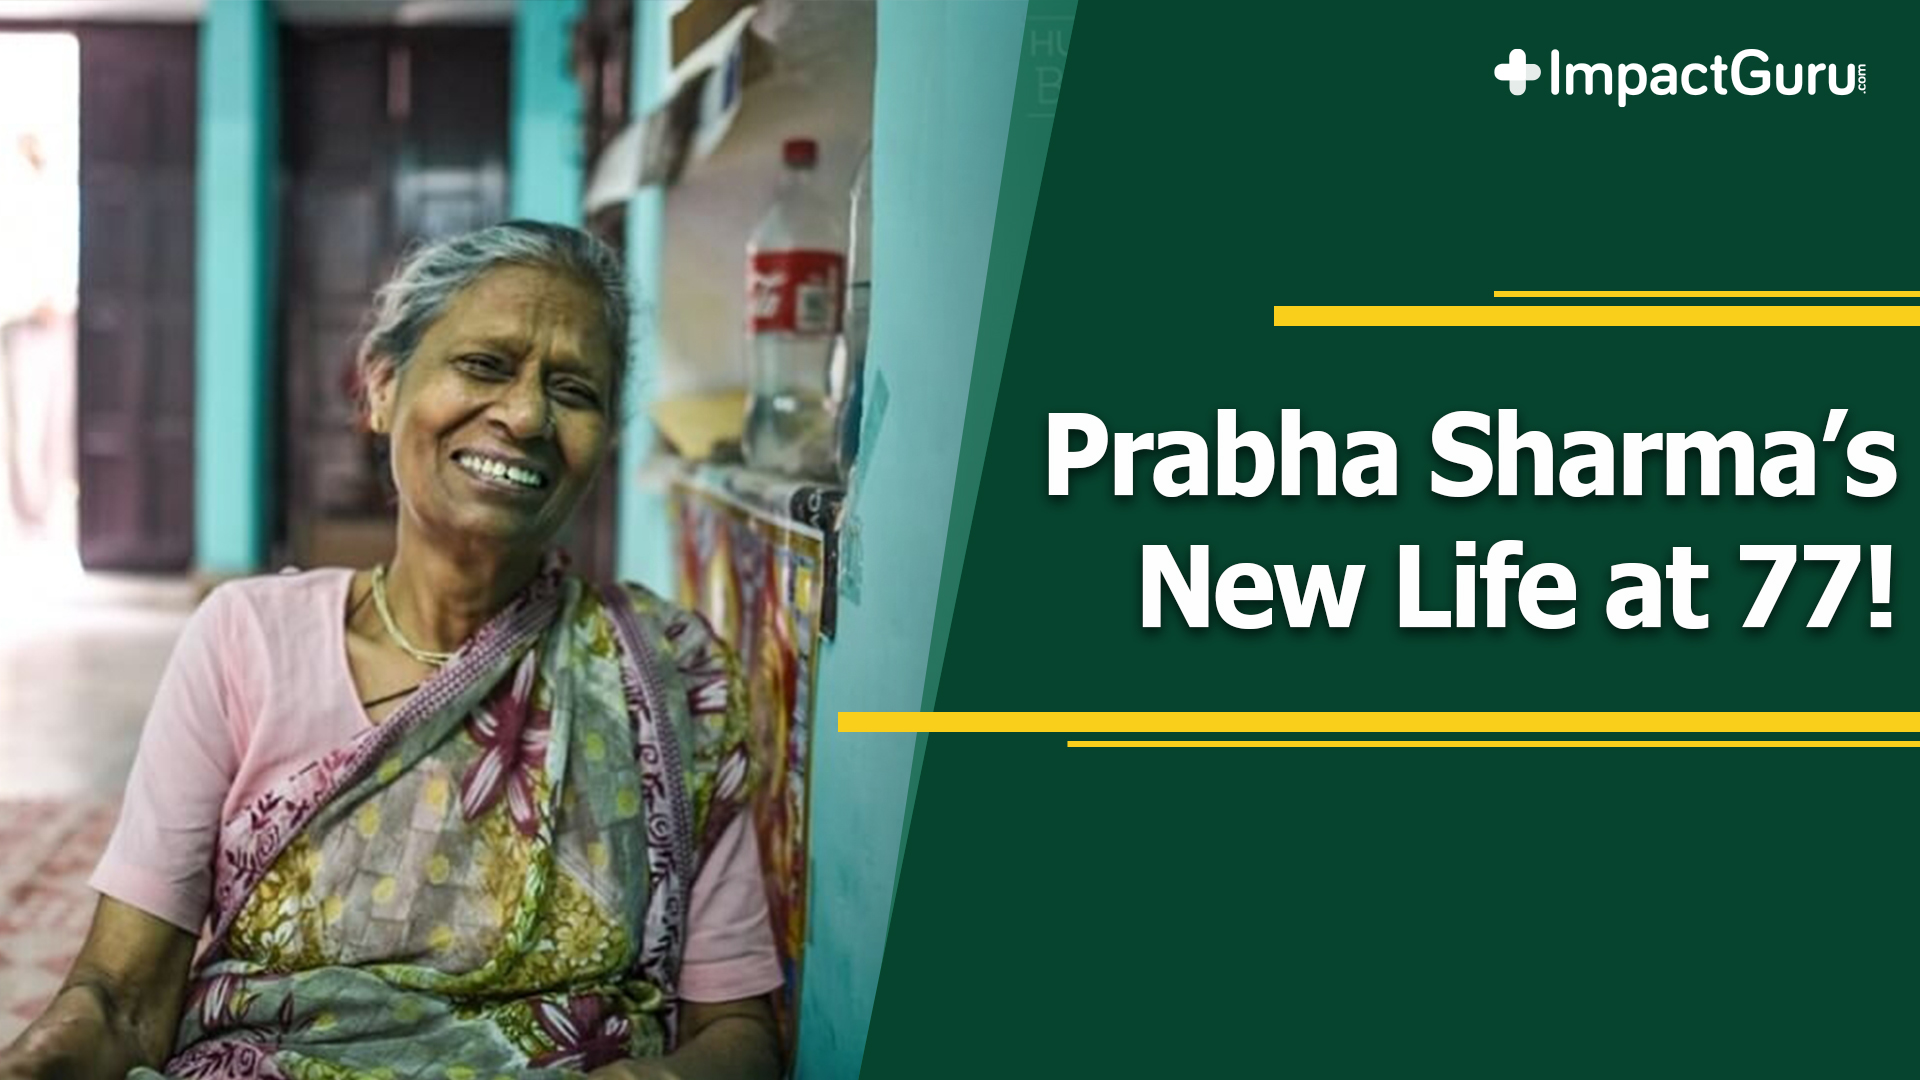 Prabha Sharma's New Life at 77!